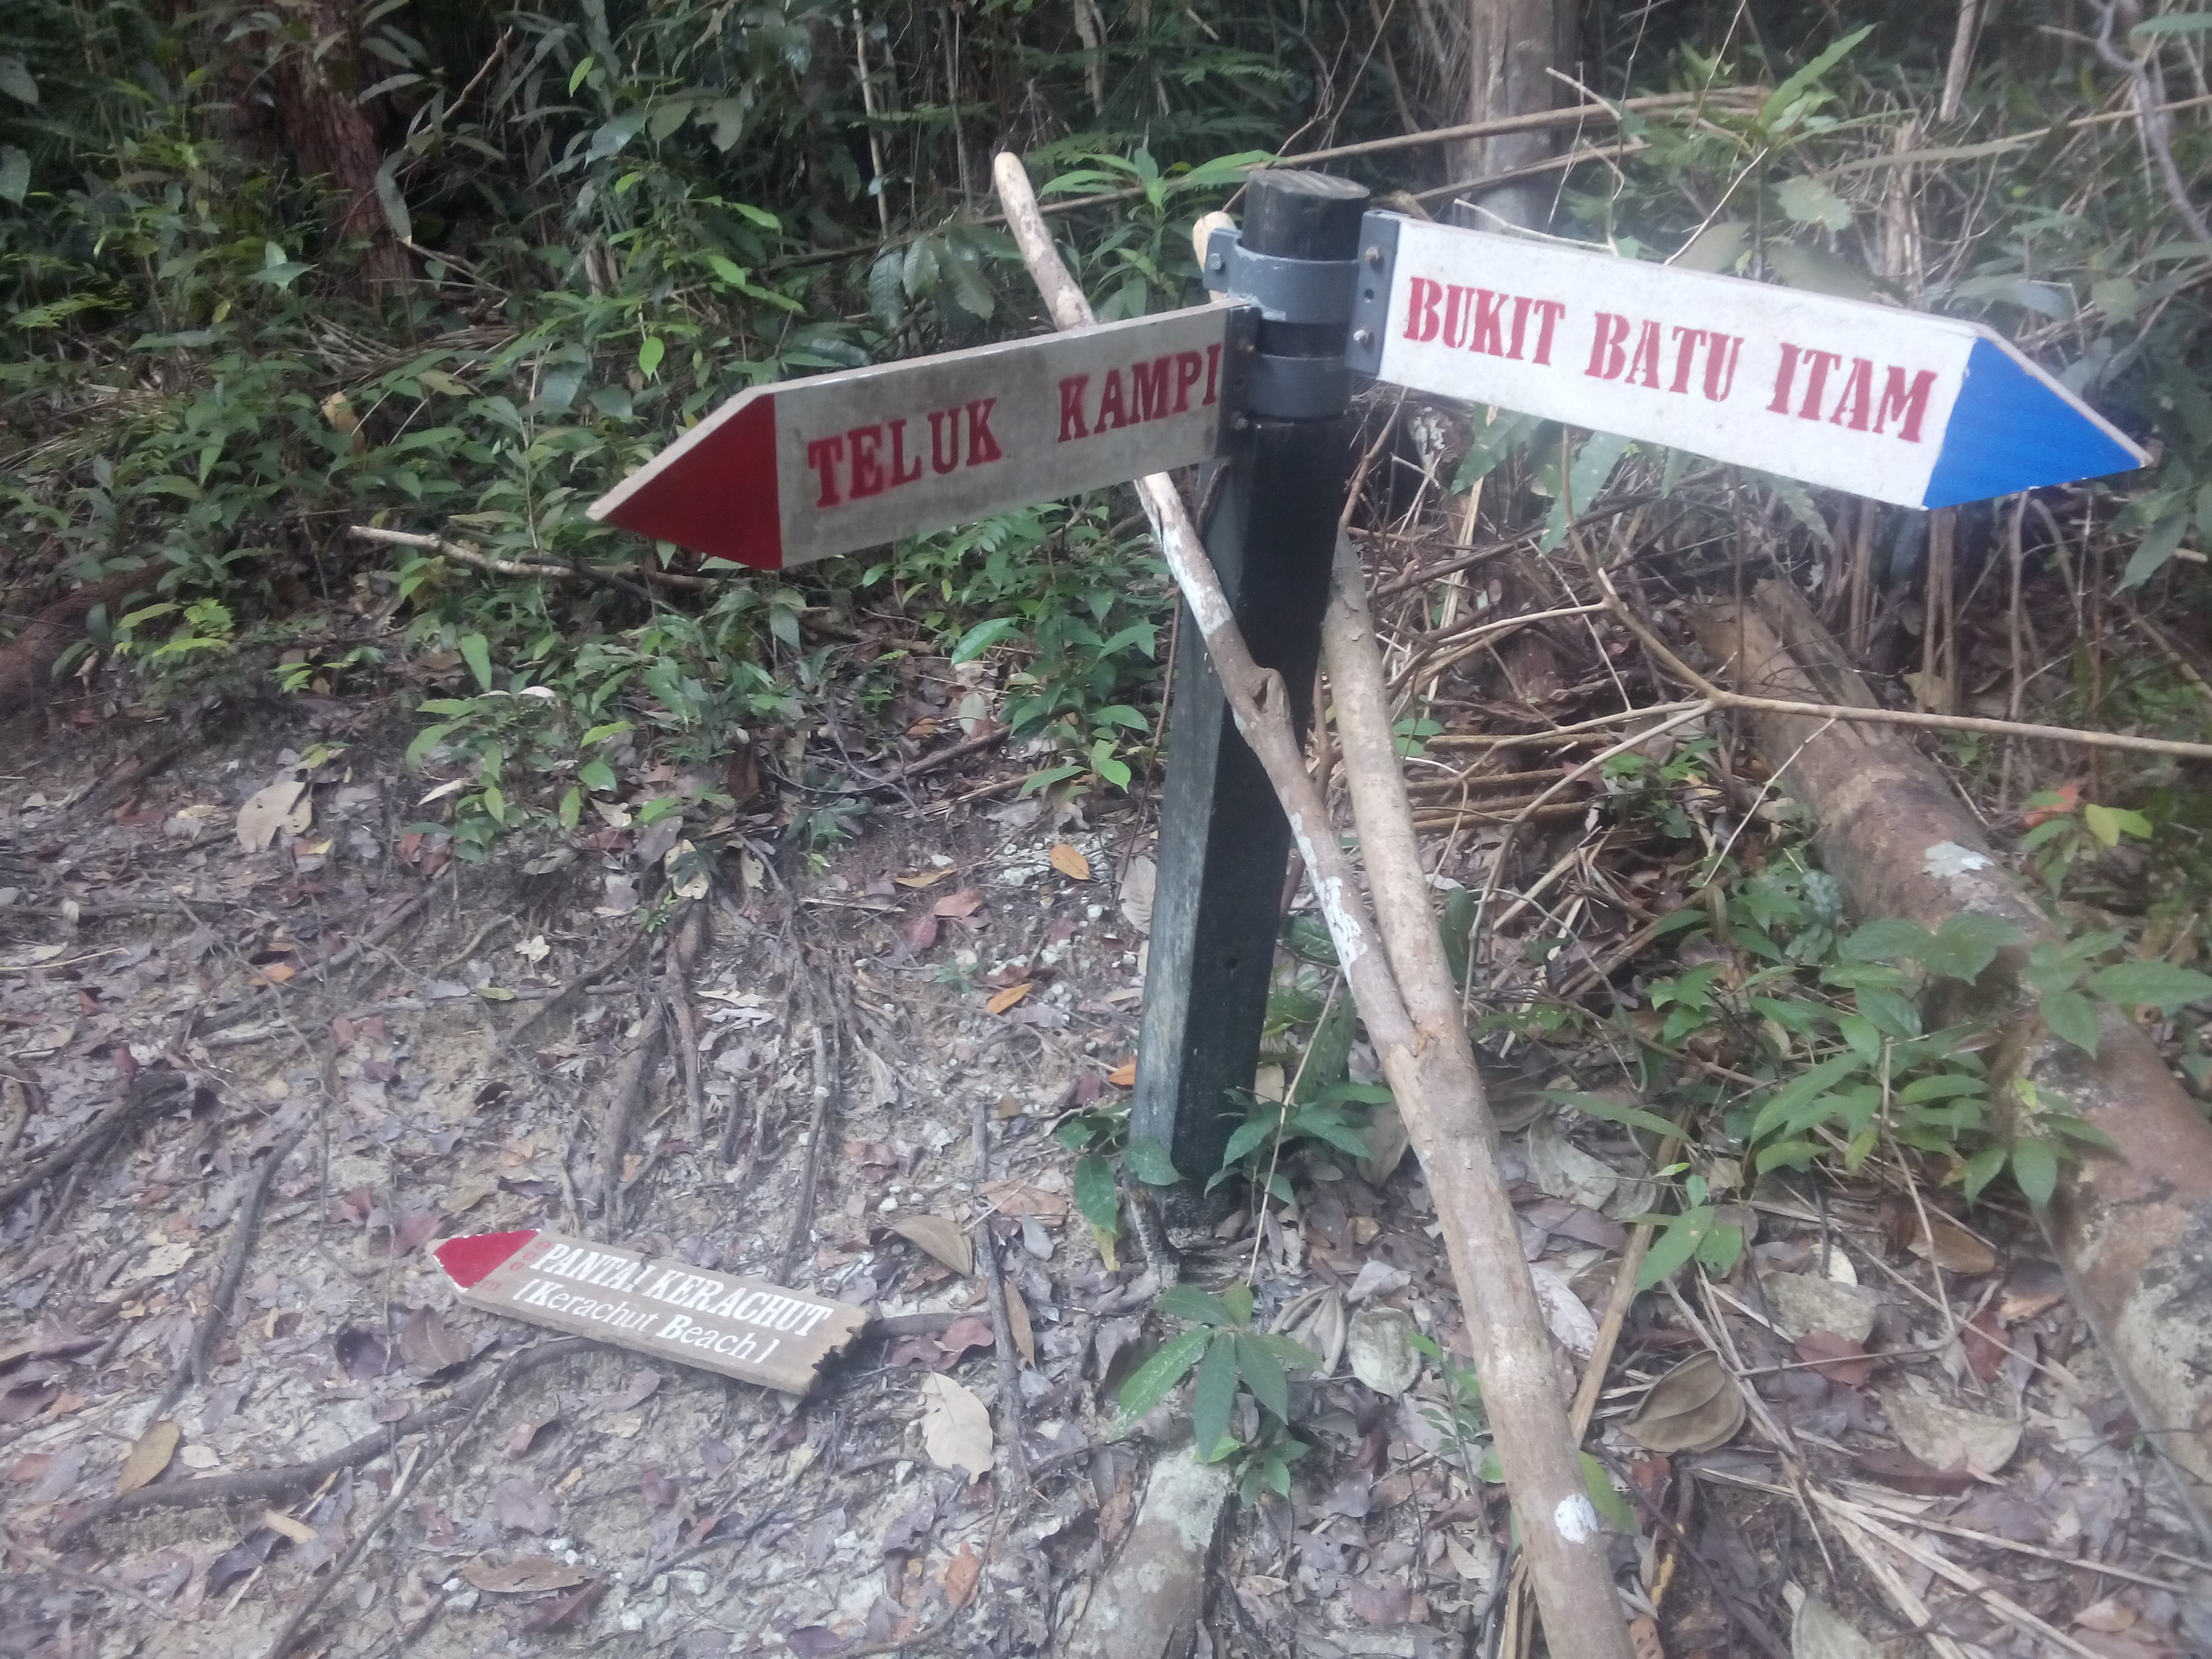 A broken signpost in the jungle